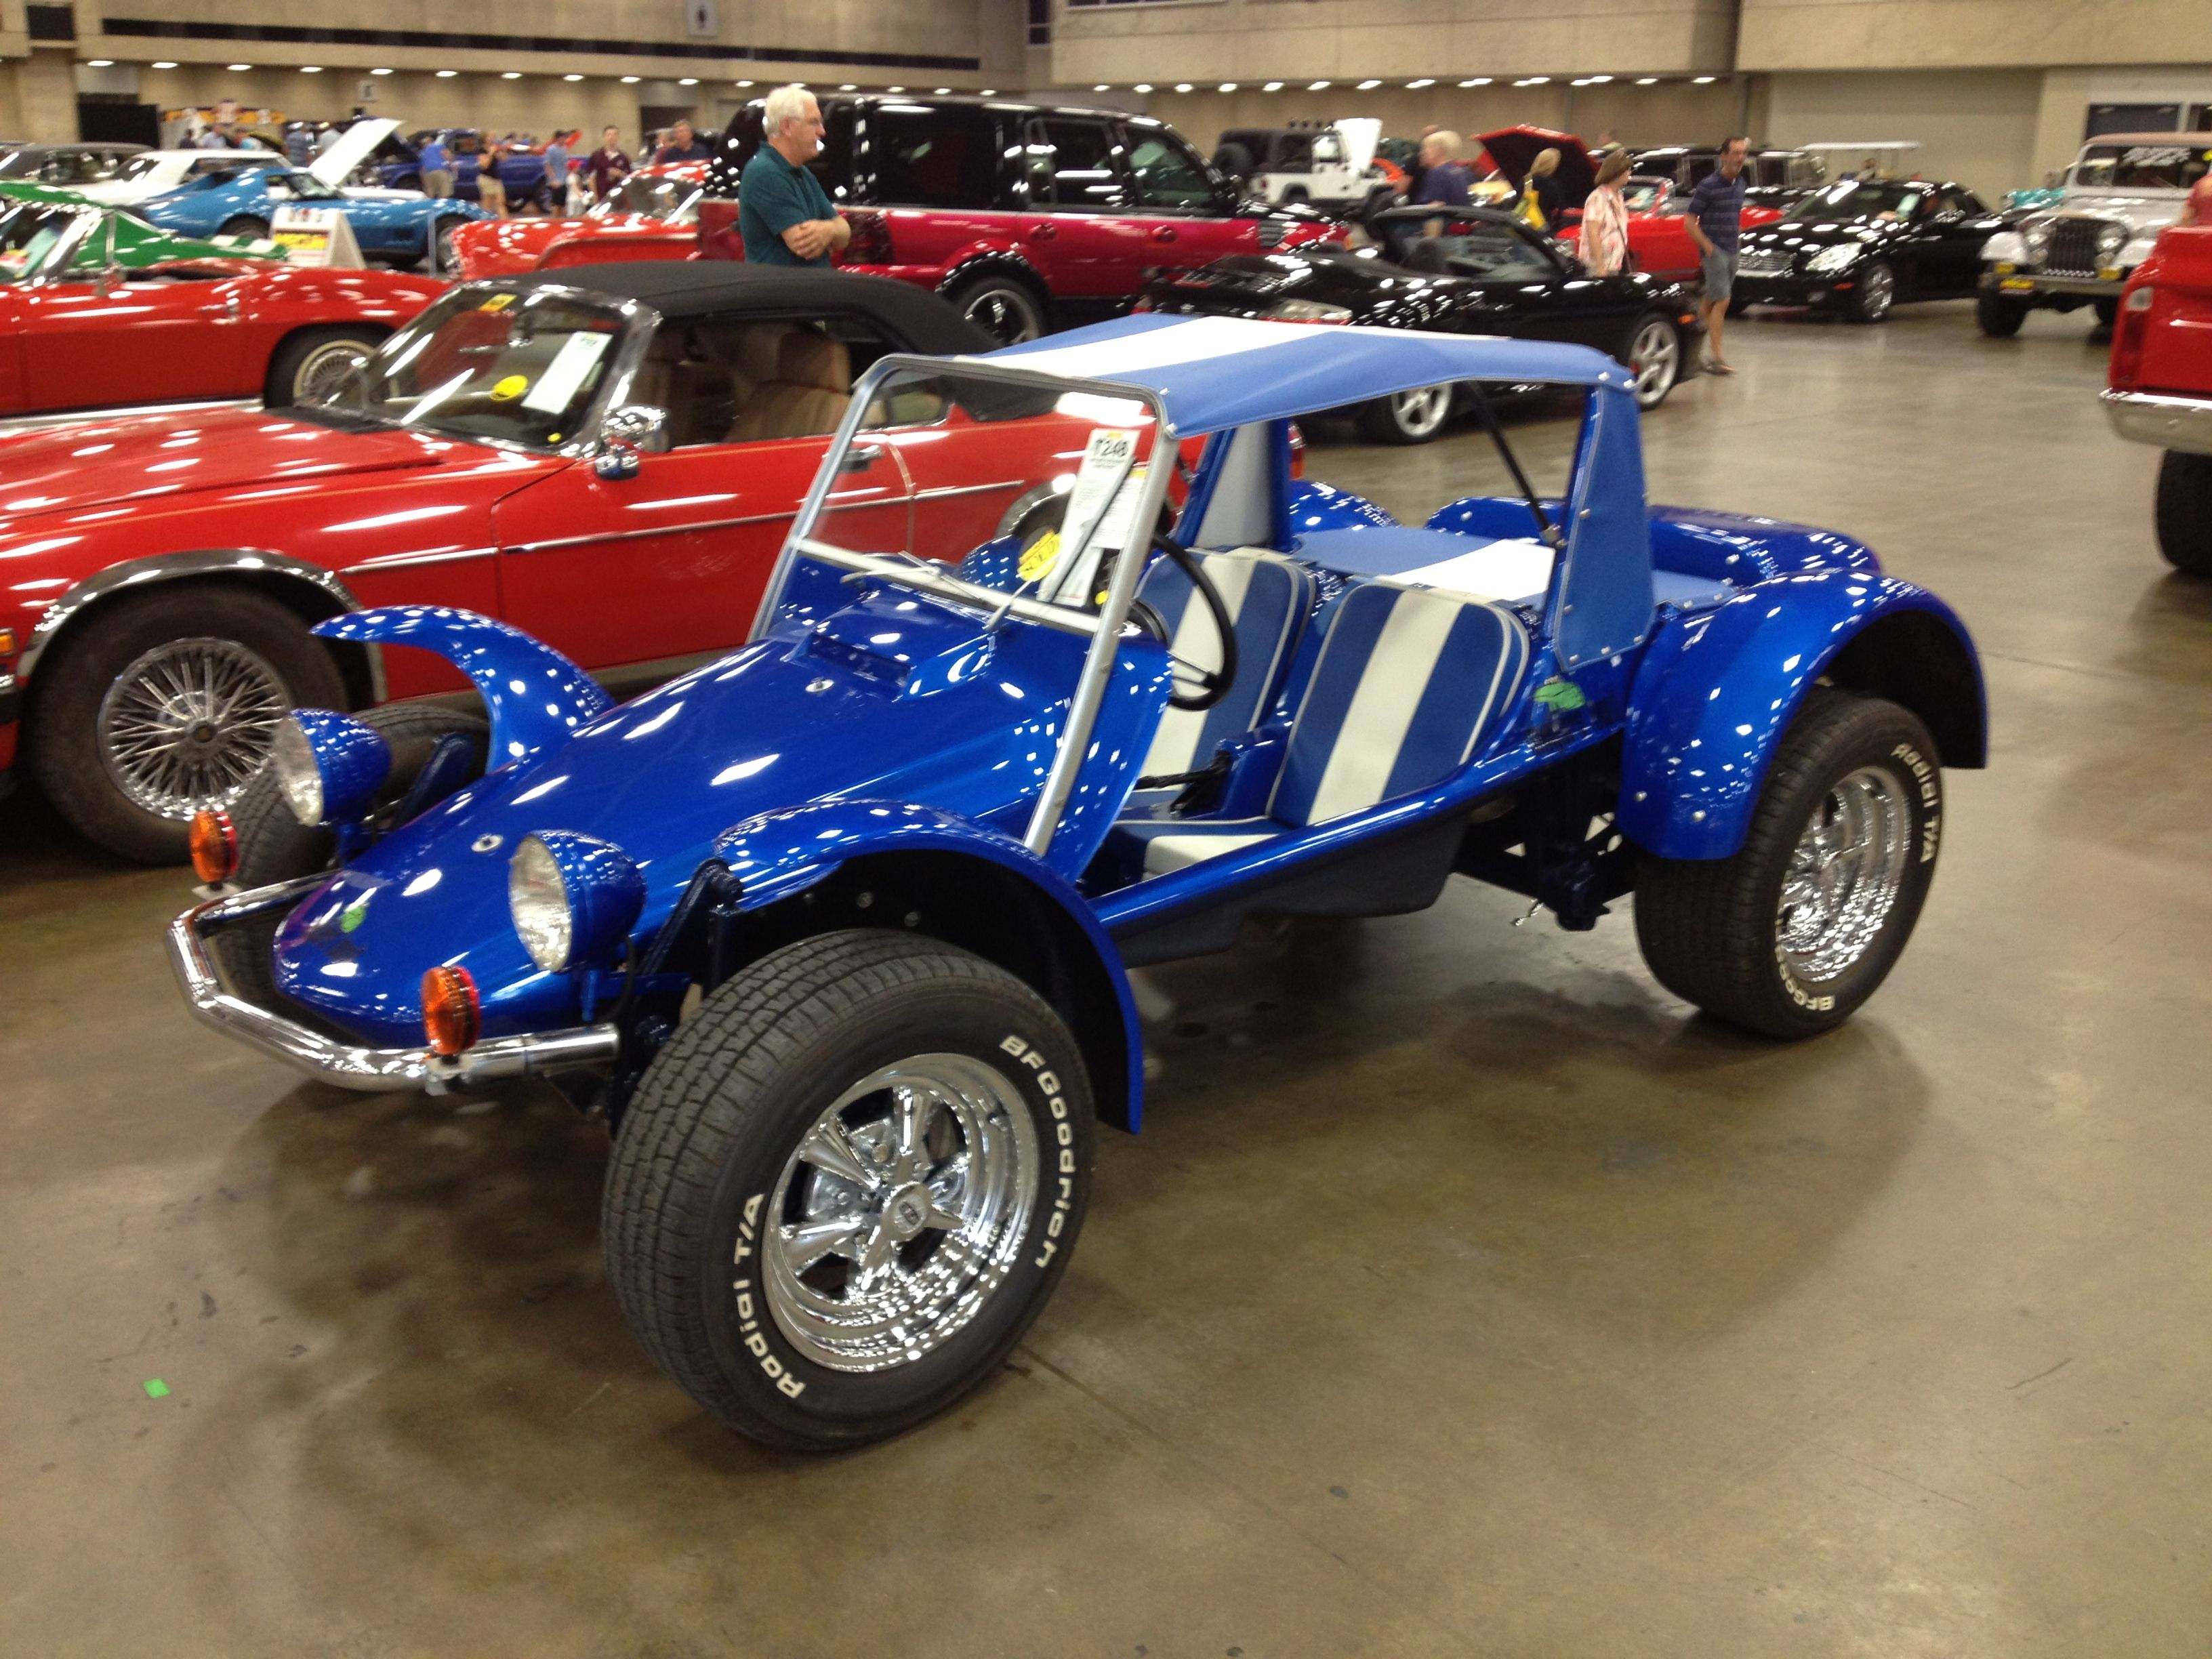 Manx Dune Buggy I Saw At Dallas Texas Mecum Car Auction Wish Would Have